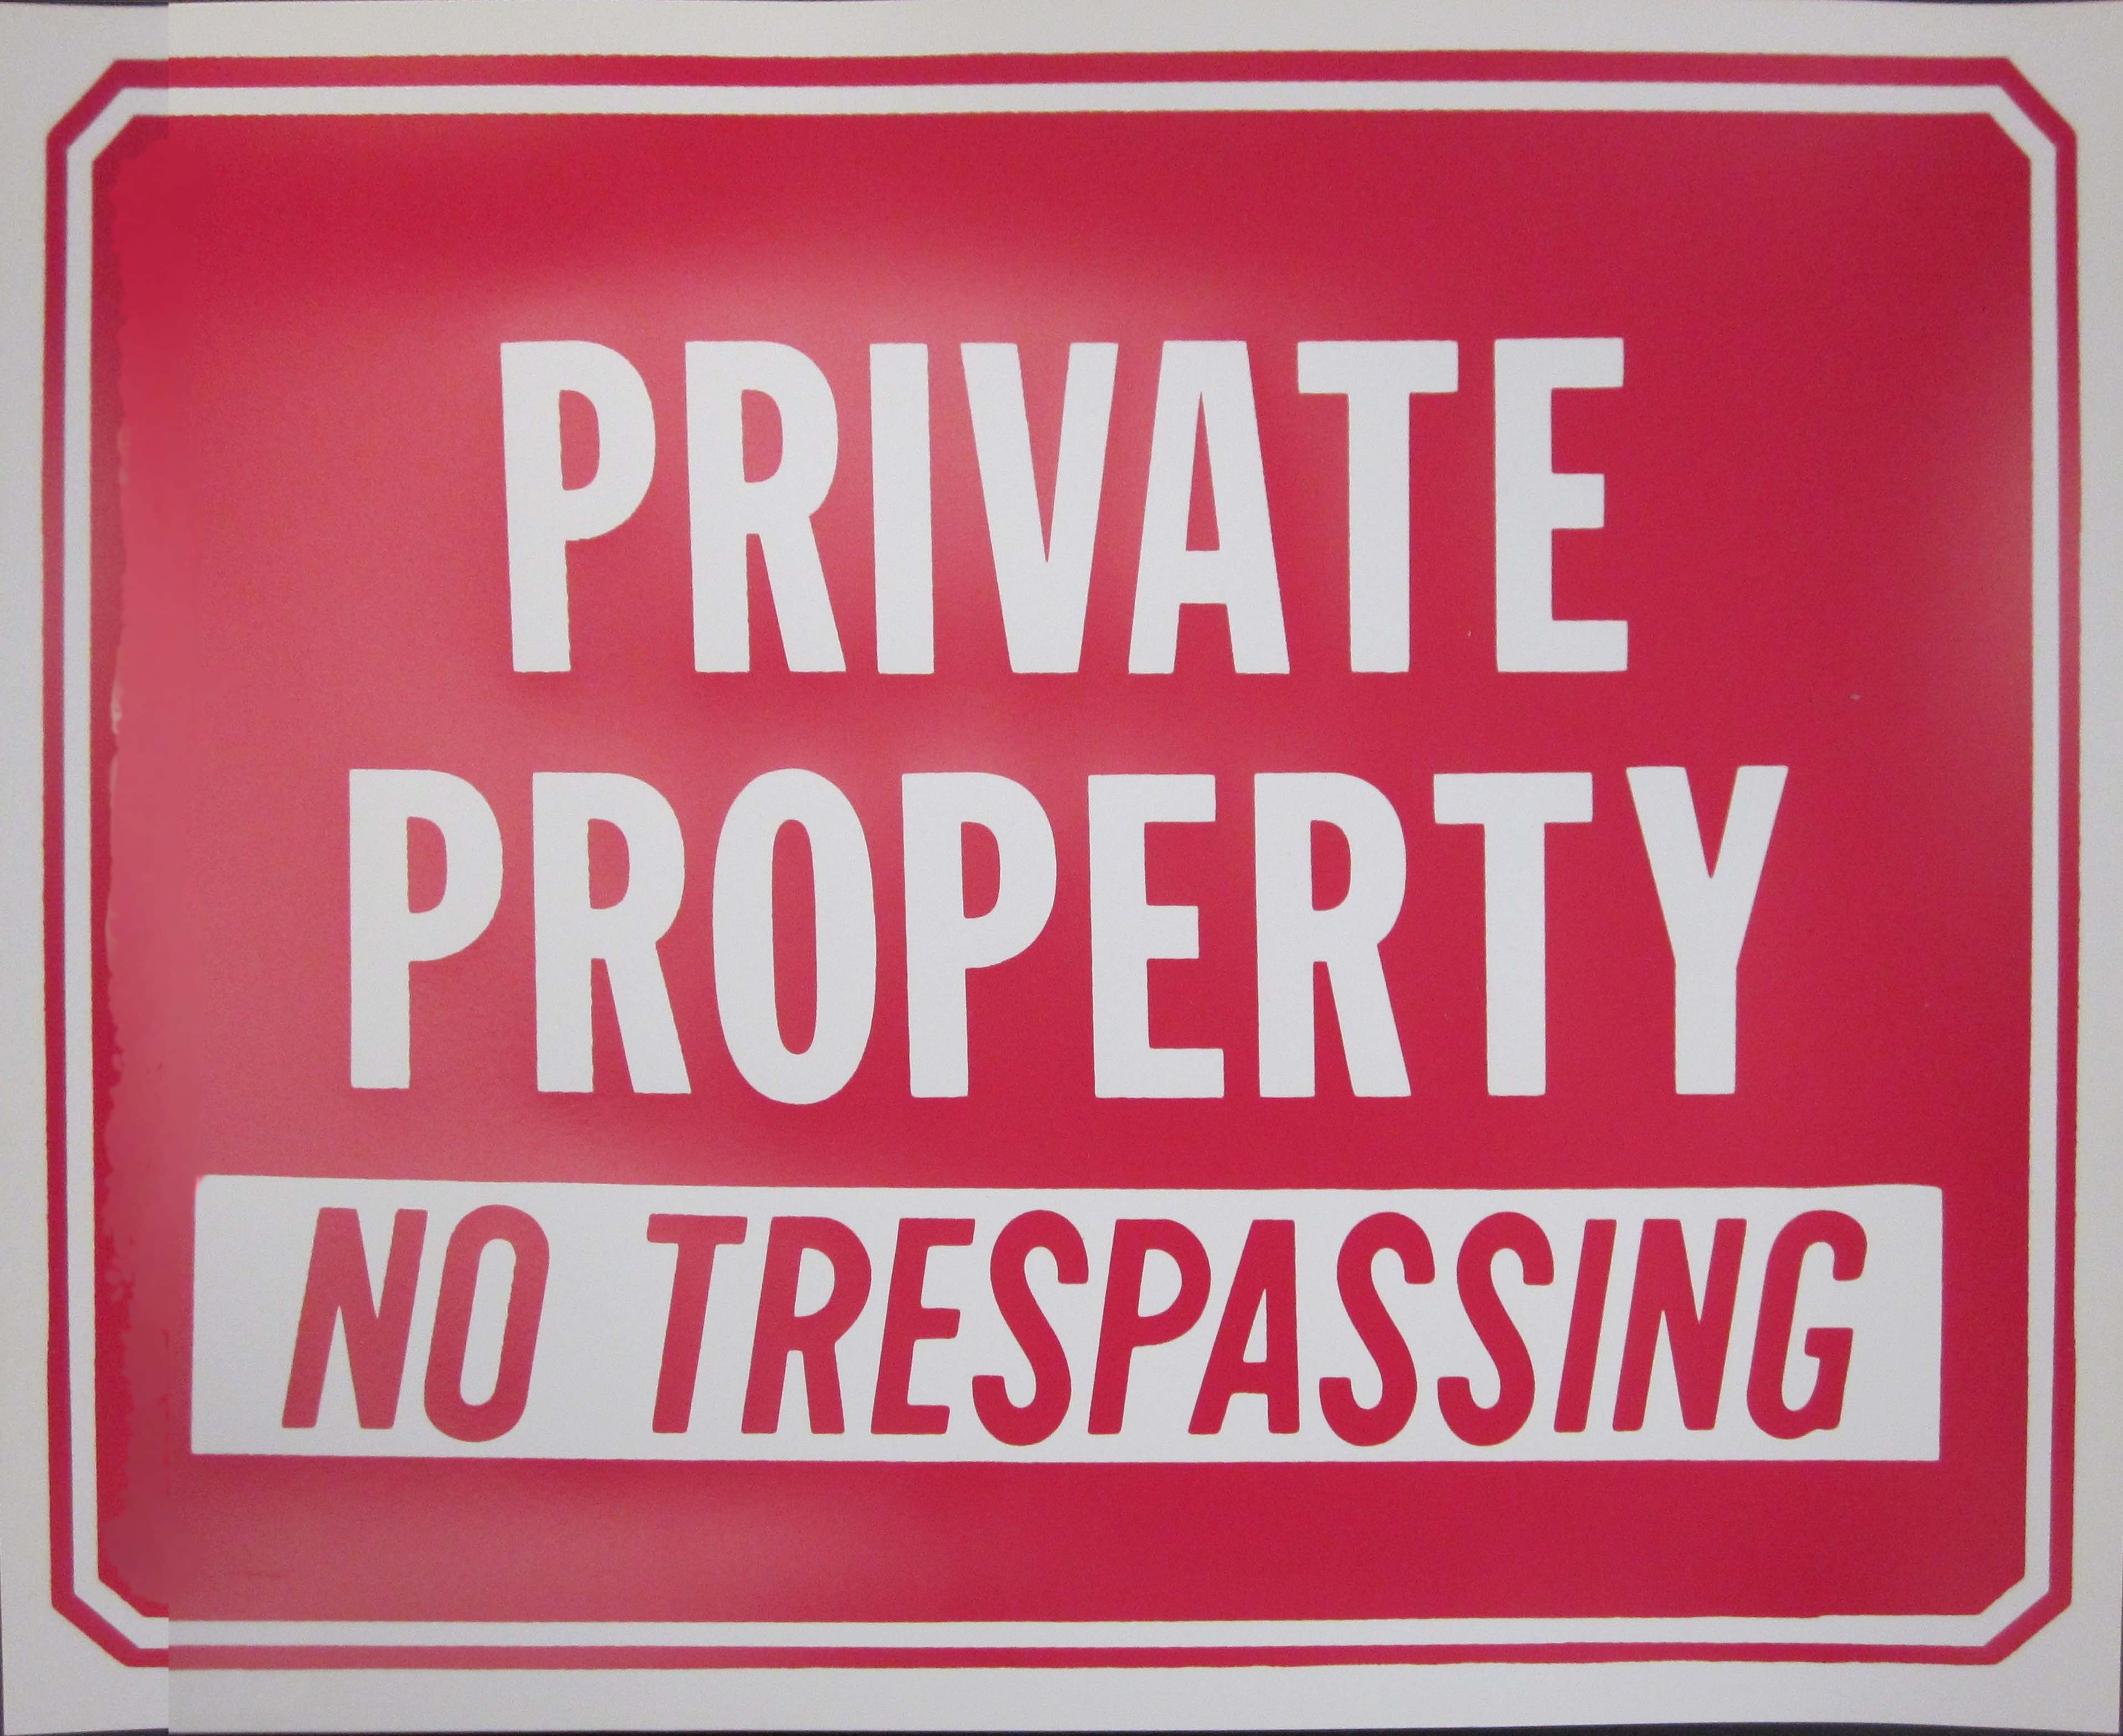 """Image logo for 12"""" x 9"""" Plastic Sign:  PRIVATE PROPERTY - NO TRESPASSING"""